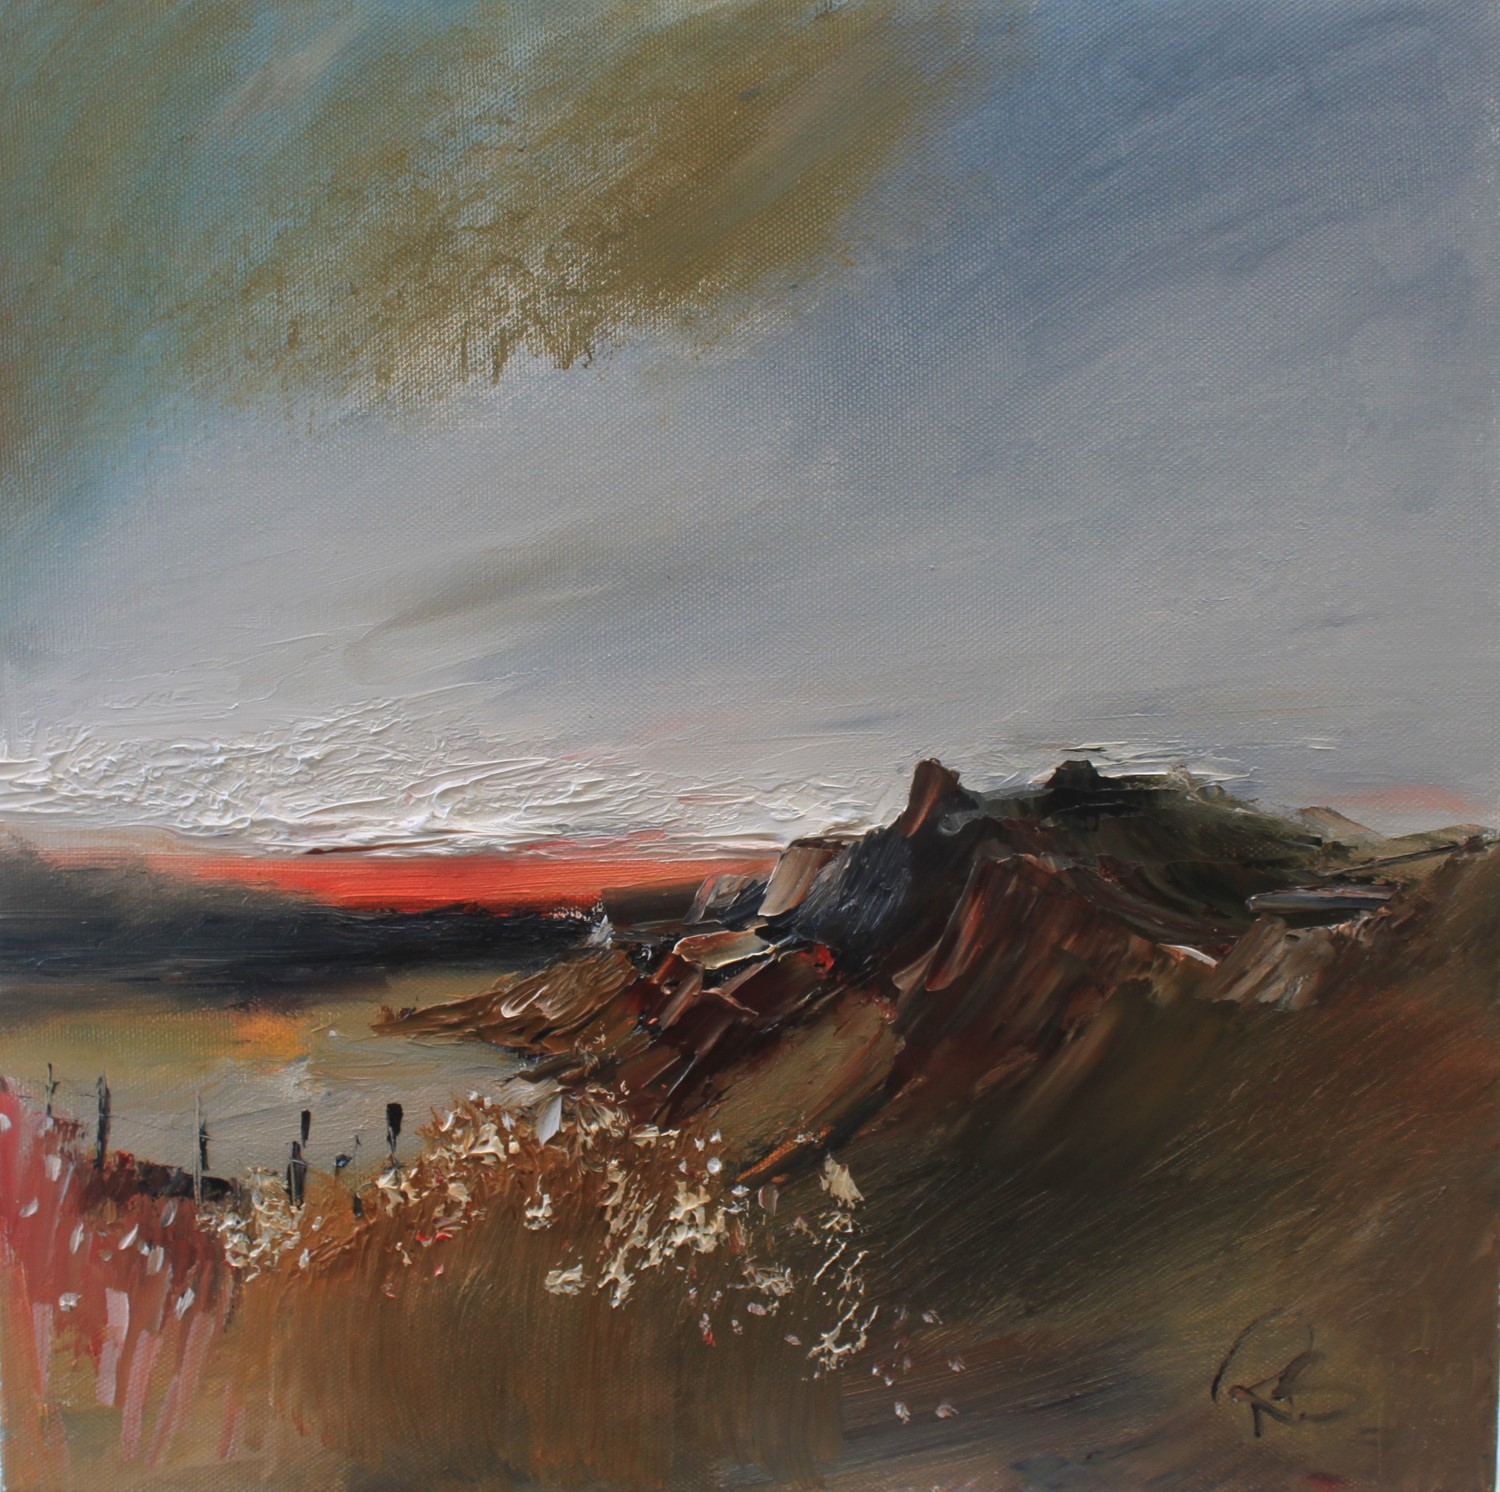 'The Glen at Sunset' by artist Rosanne Barr